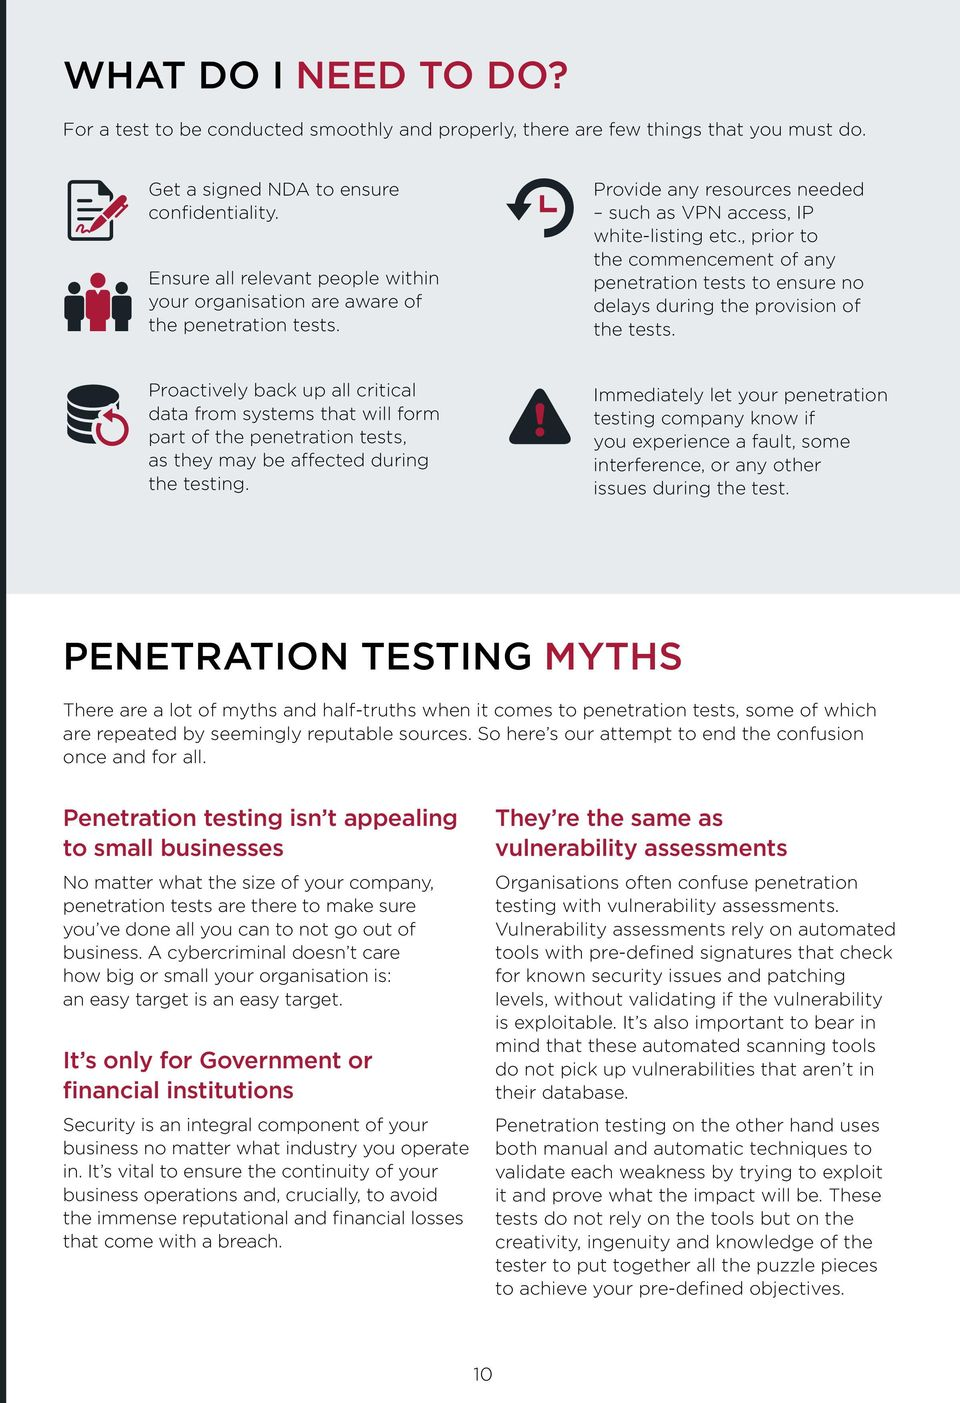 , prior to the commencement of any penetration tests to ensure no delays during the provision of the tests.